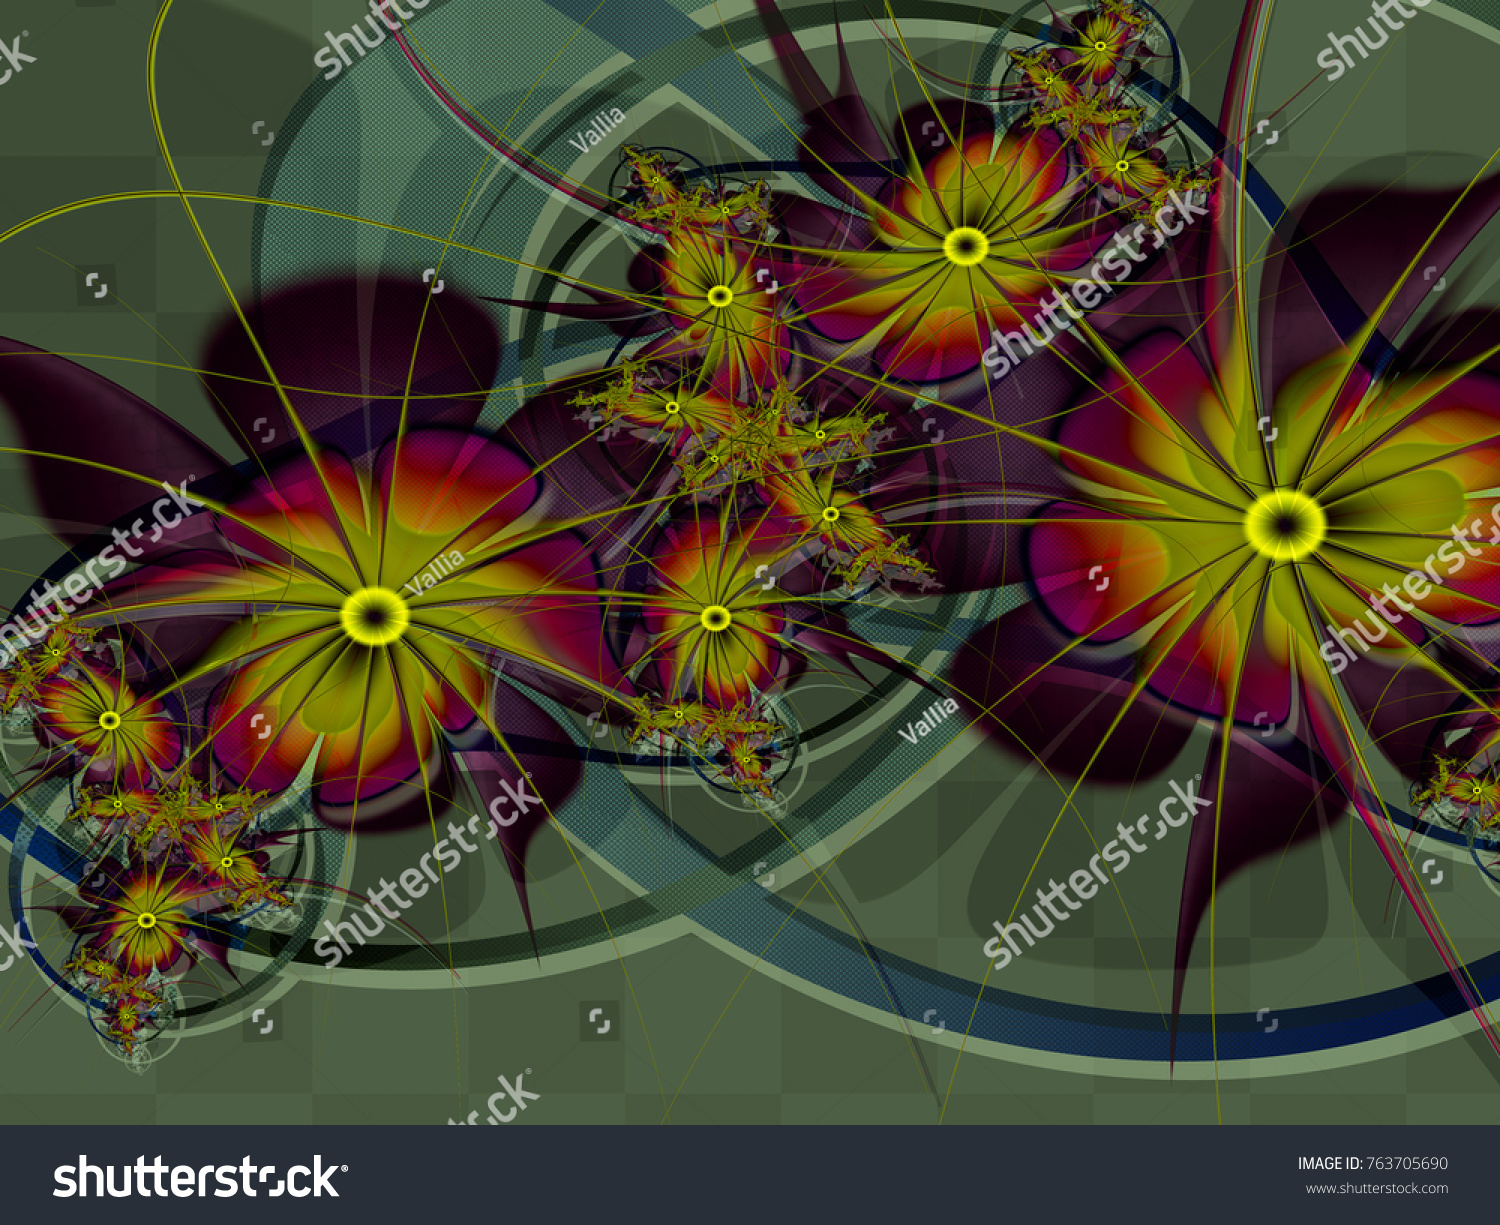 Royalty Free Stock Illustration Of Abstract Fractal Background